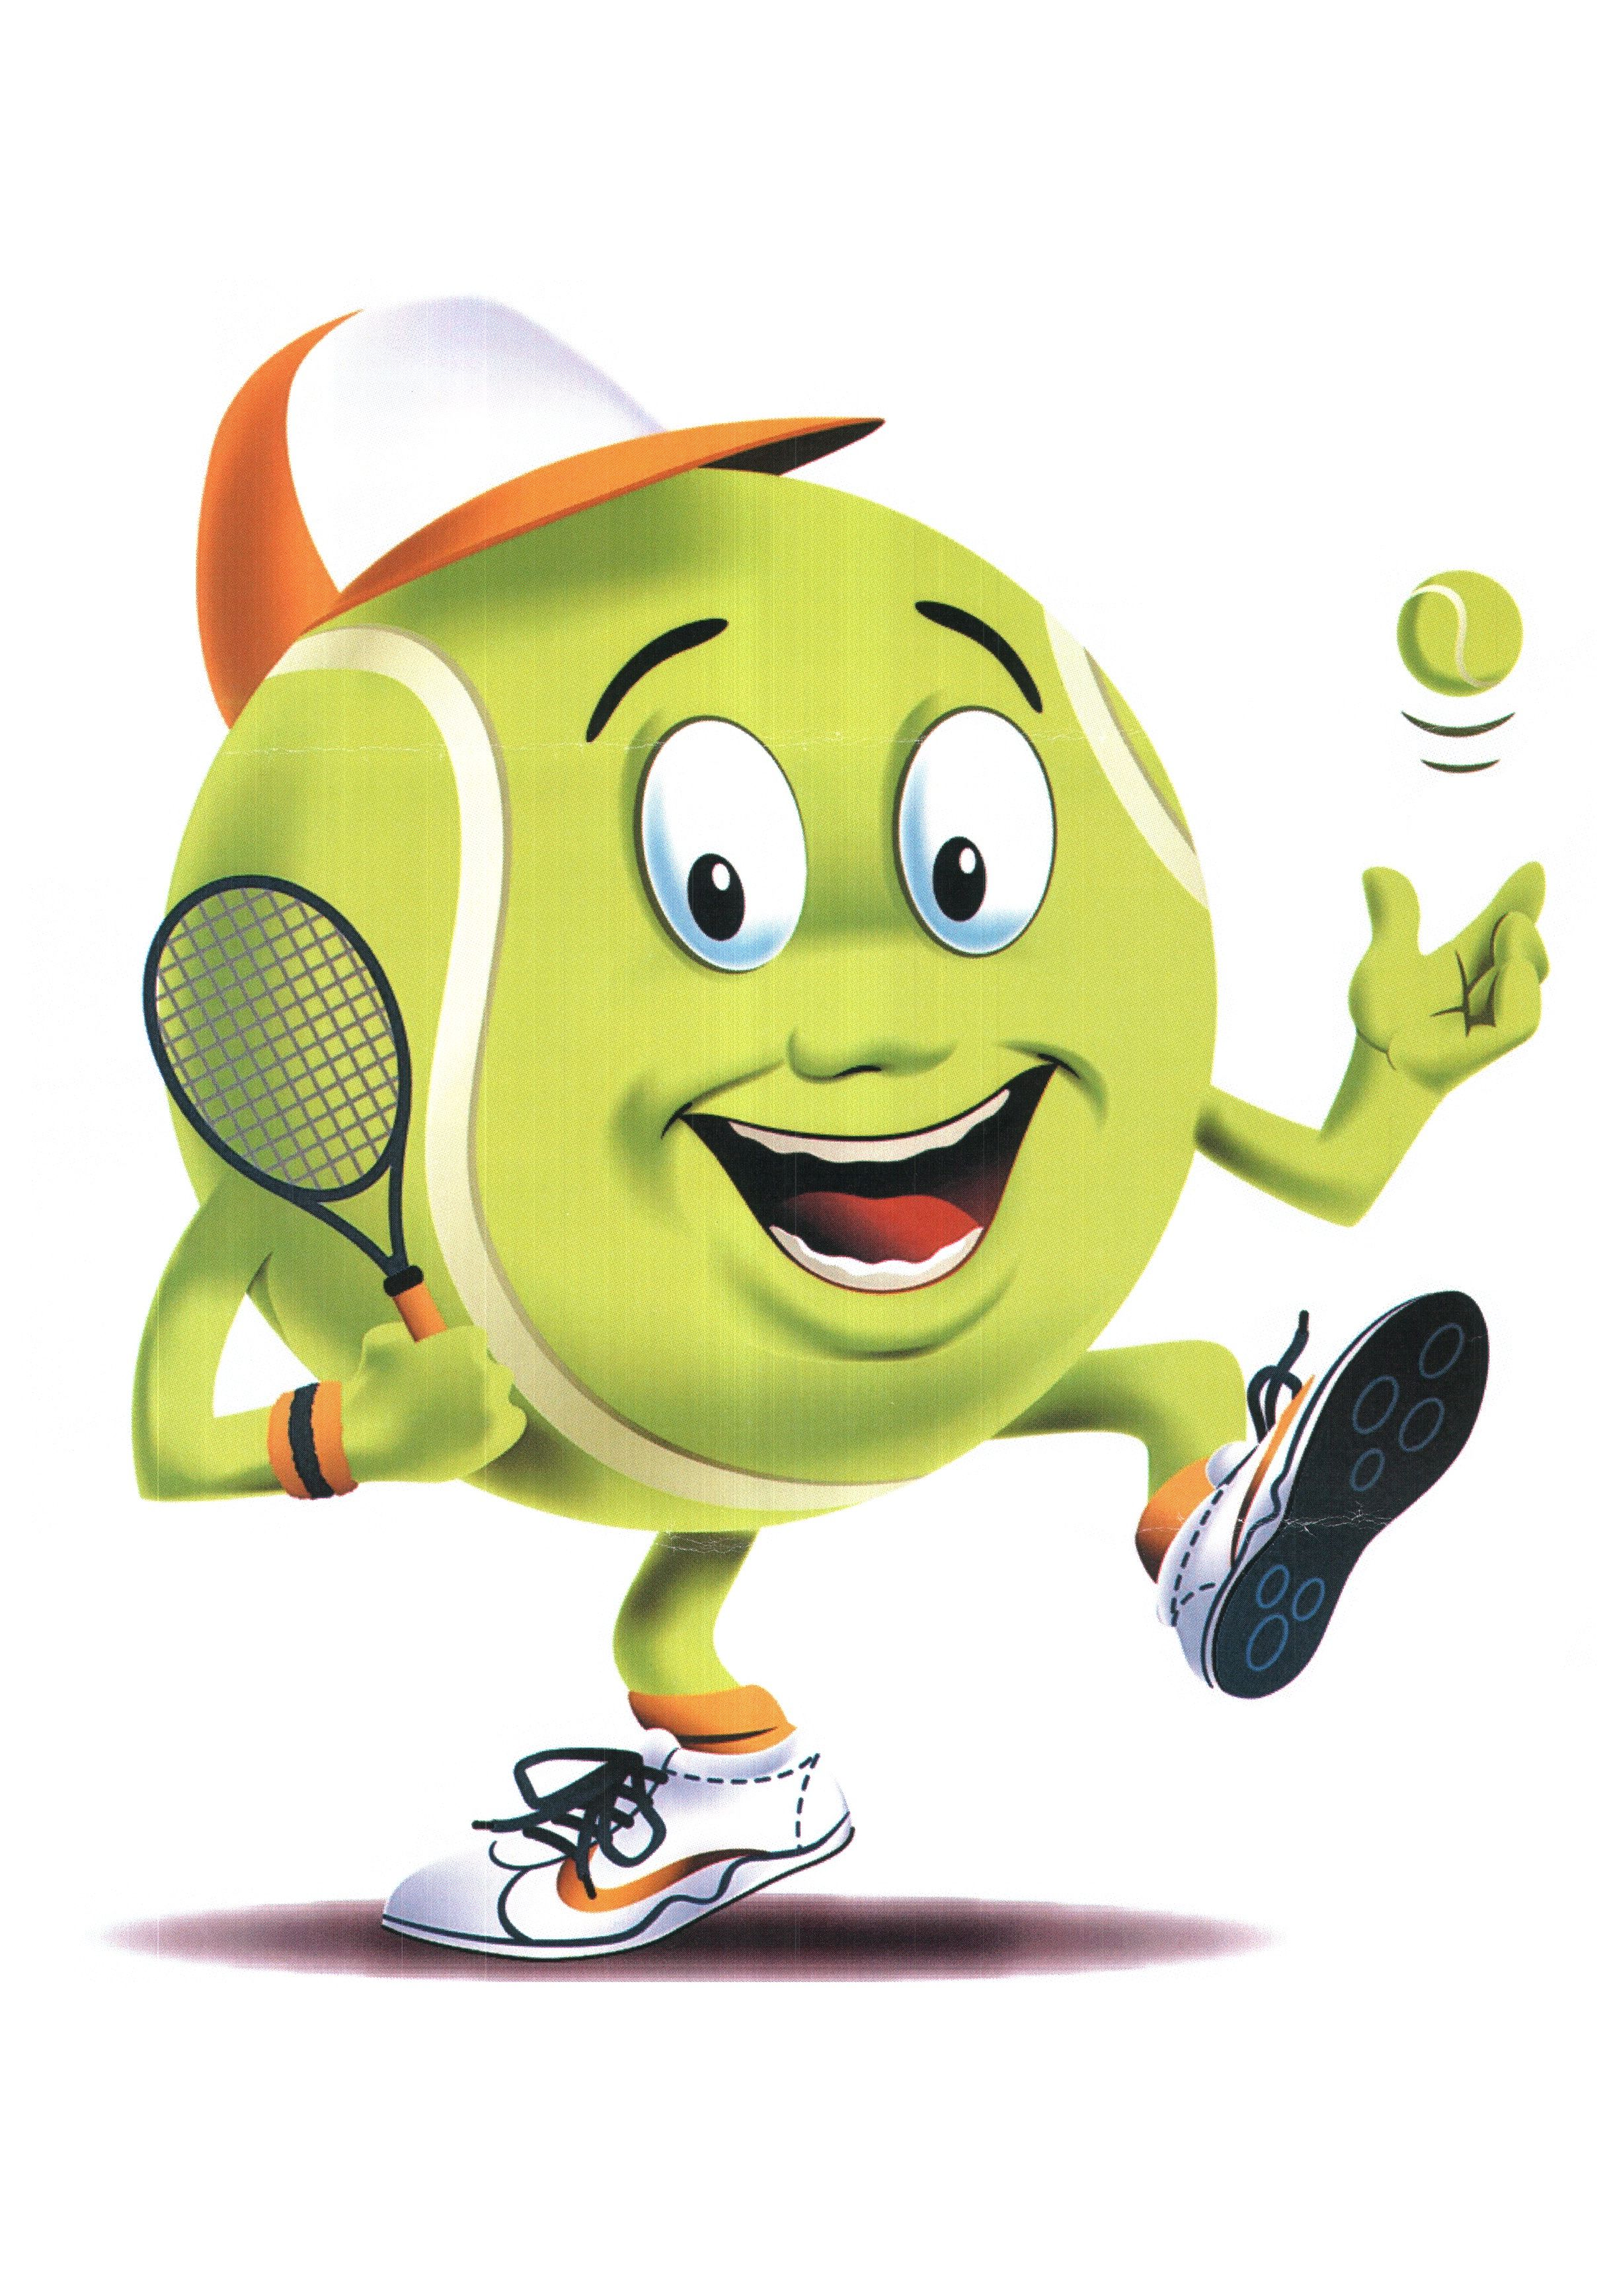 Cartoon Ball Related Keywords Suggestions Cartoon Ball Long Tail Keywords Tennis Art Animated Emoticons Nadal Tennis